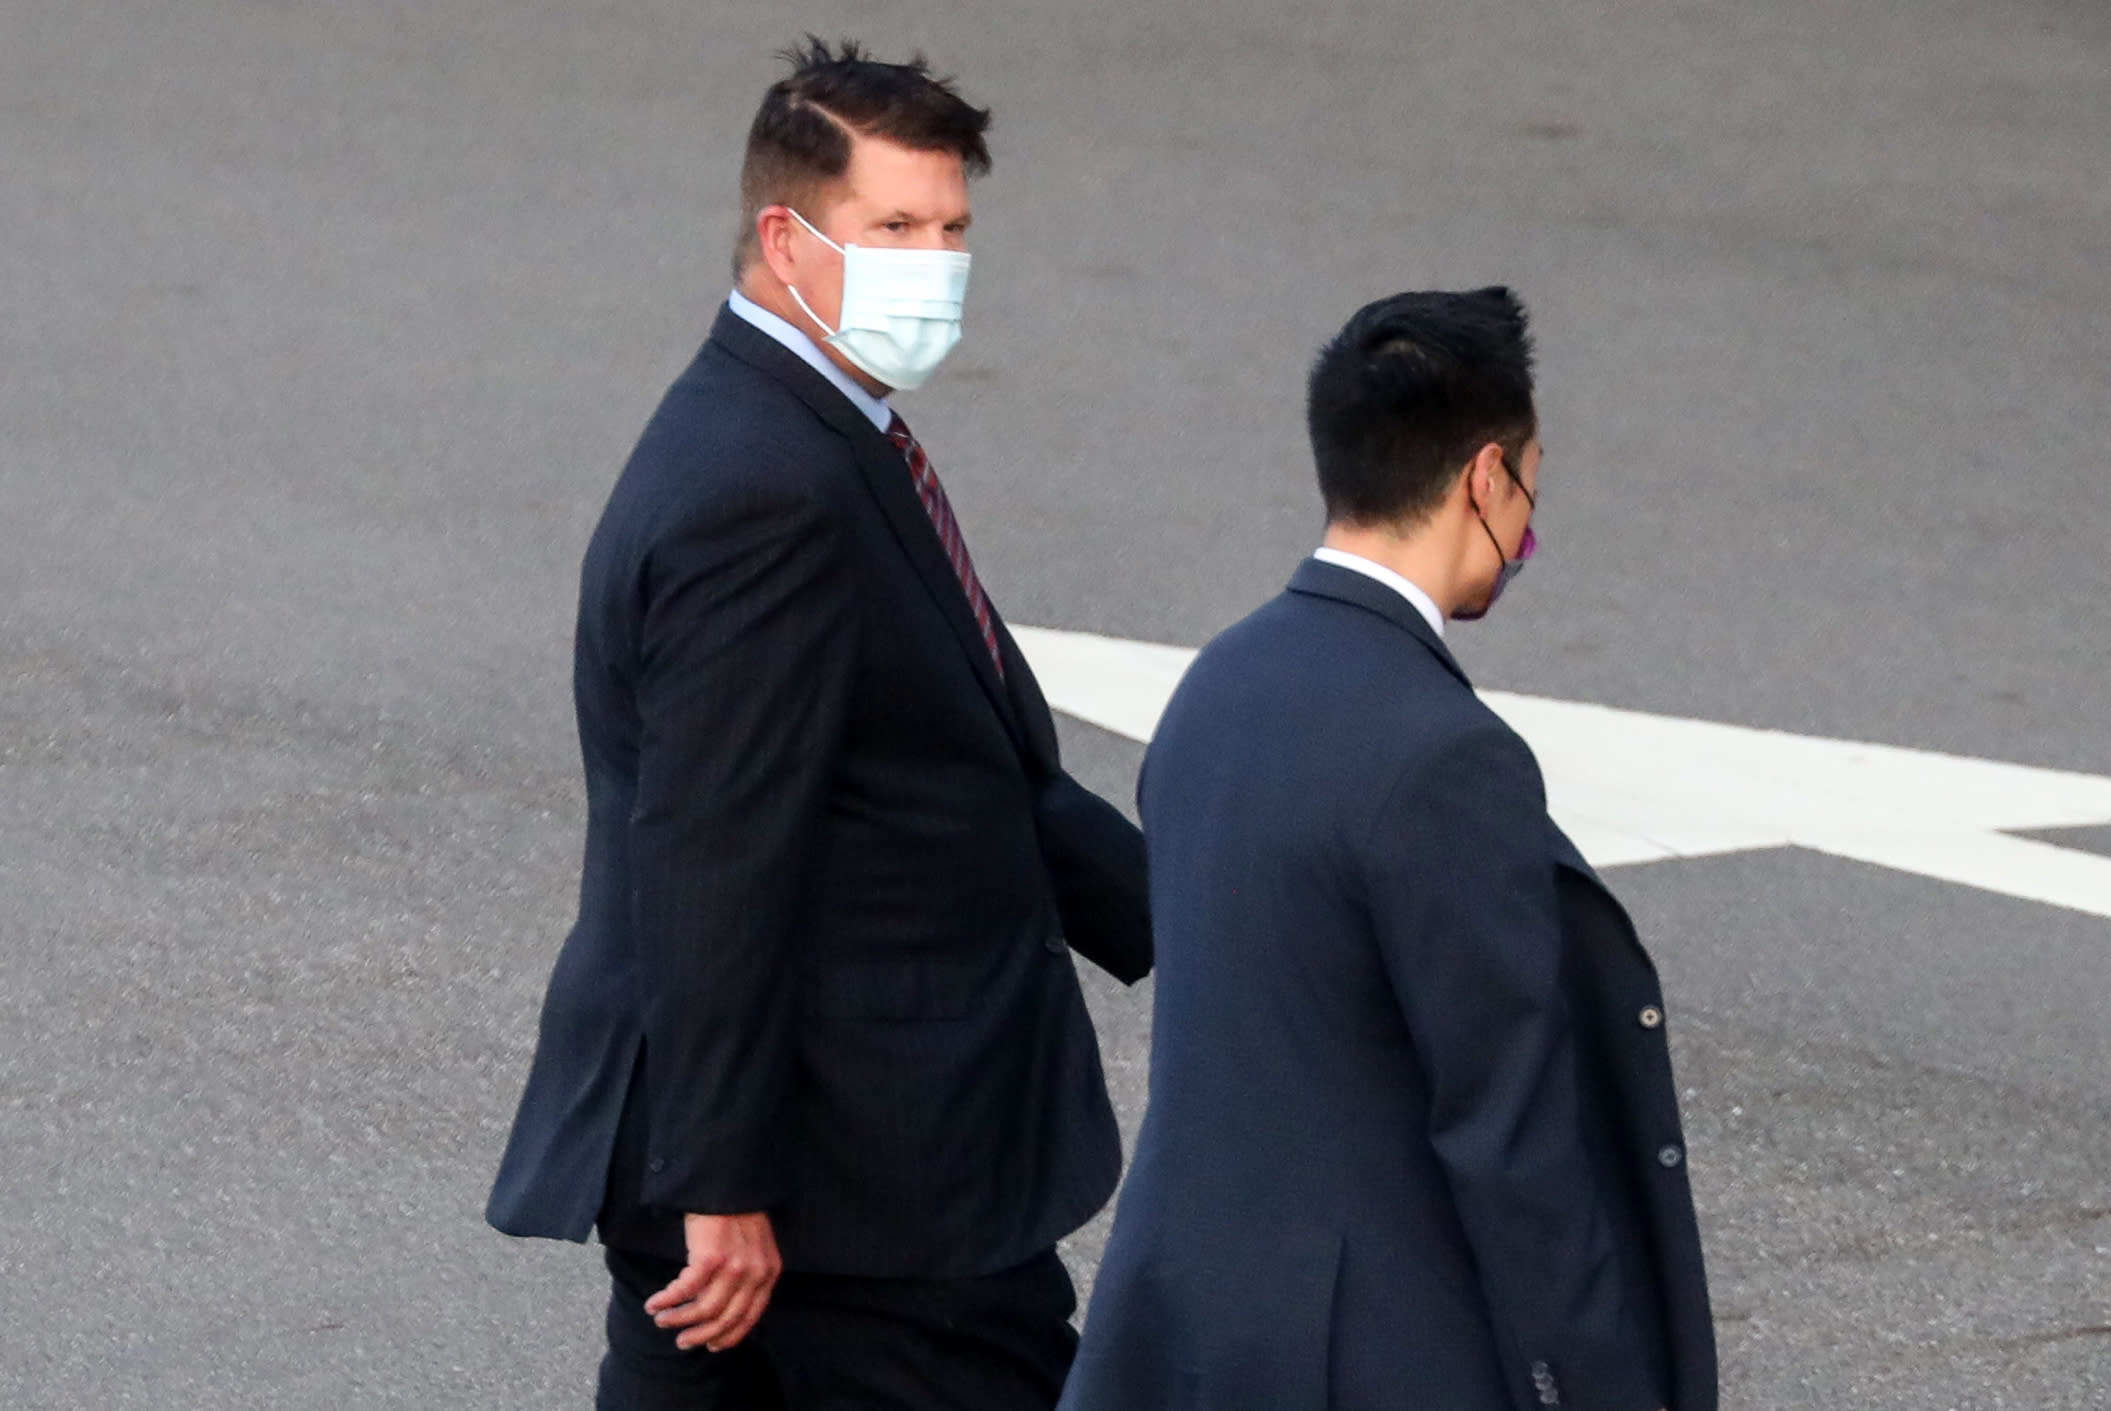 FILE - In this Sept. 17, 2020, file photo, U.S. Undersecretary of State Keith Krach, walks away after disembarking from a plane upon arrival at an airforce base in Taipei. Taiwan. The second U.S. high level envoy to visit Taiwan in two months began a day of closed-door meetings Friday, as China conducted military drills near the Taiwan Strait after threatening retaliation. (Pool Photo via AP Photo, File)